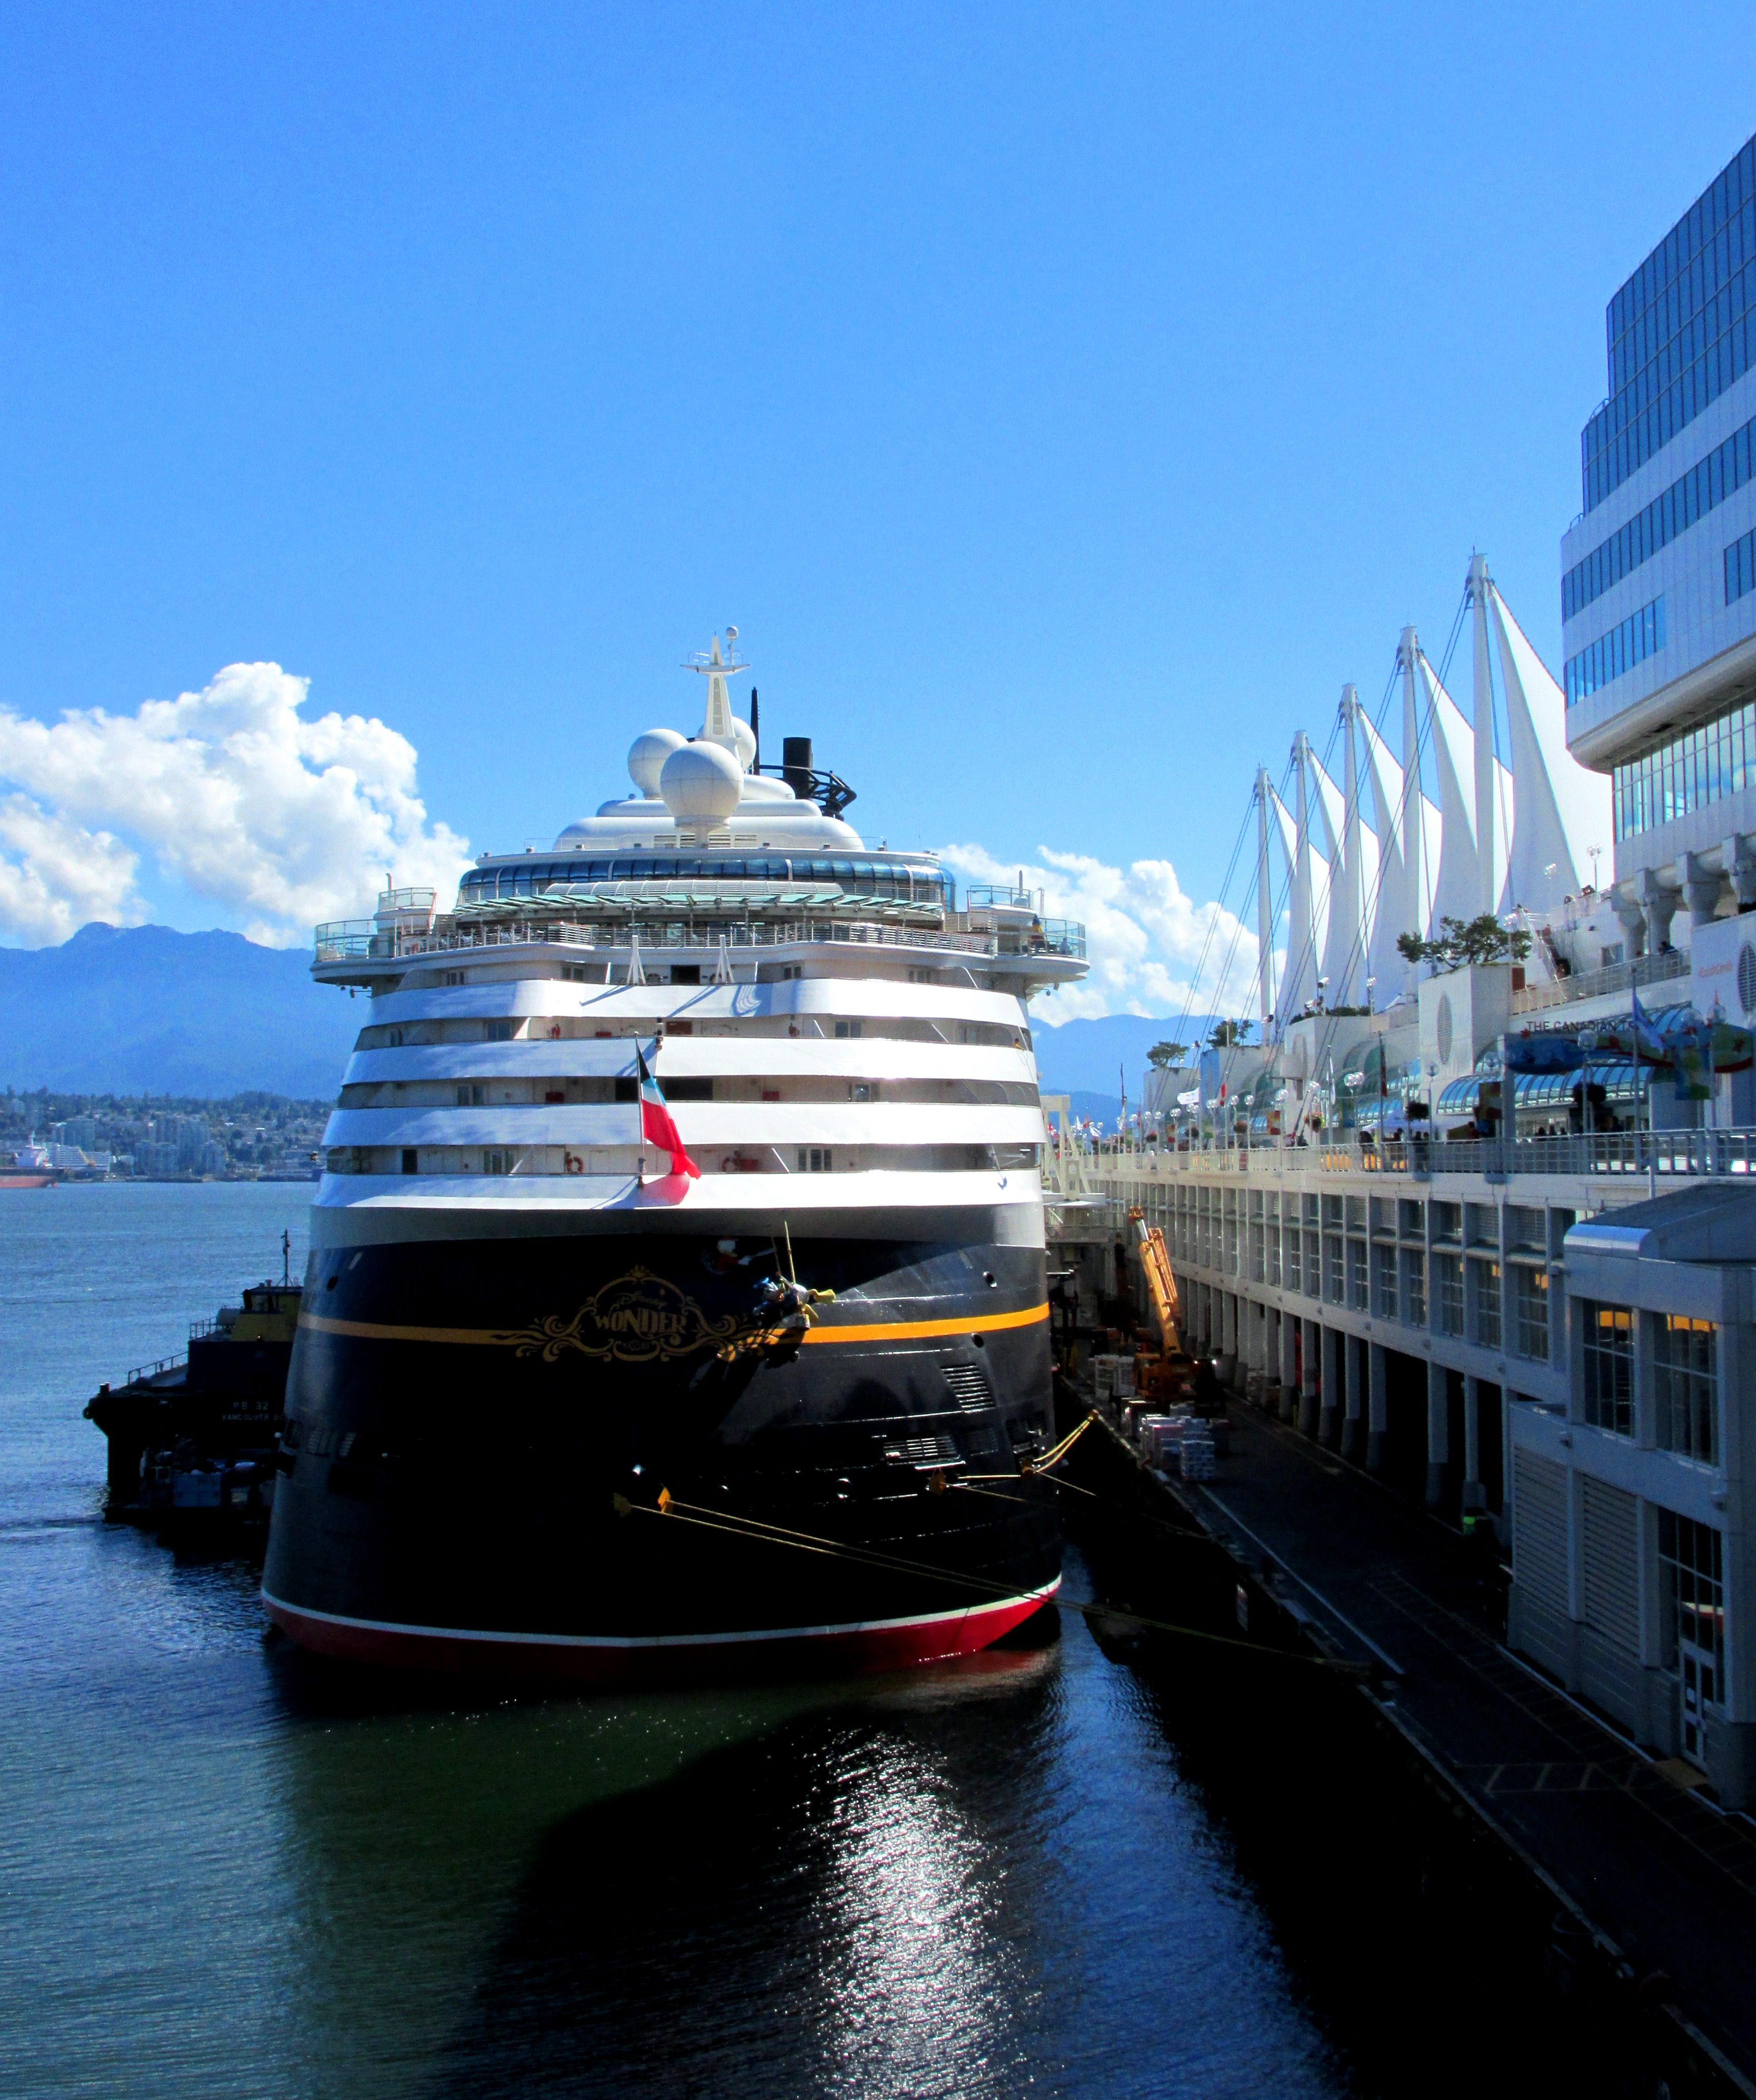 Canada Place Vancouver Cruise Terminal Basics